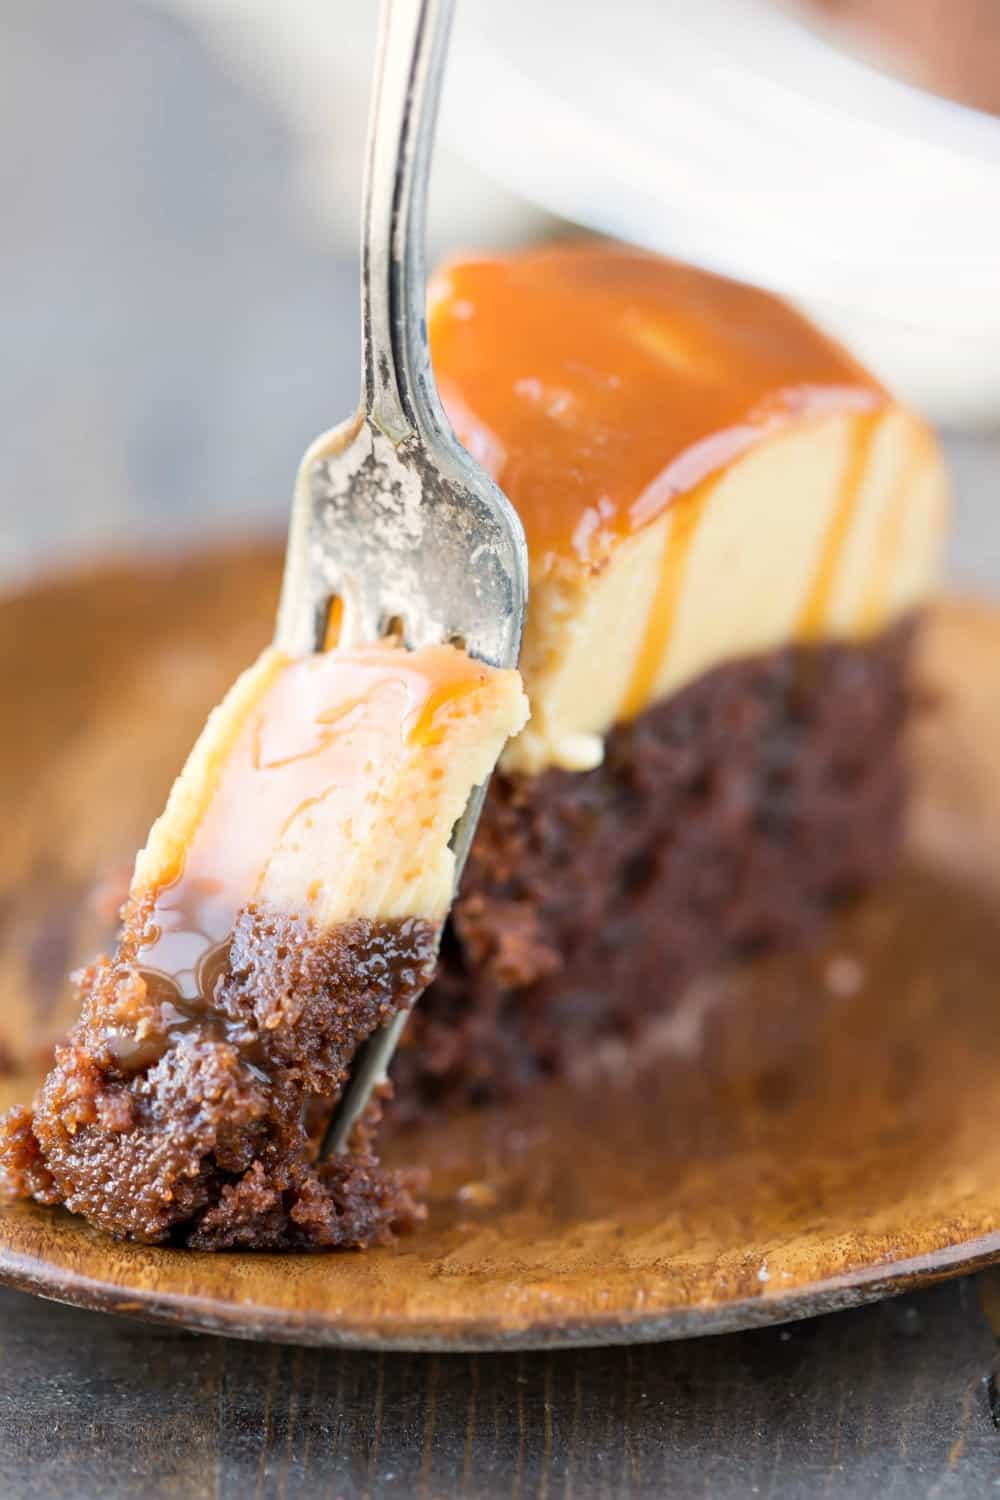 Slice of chocoflan drizzled with caramel on a wooden plate